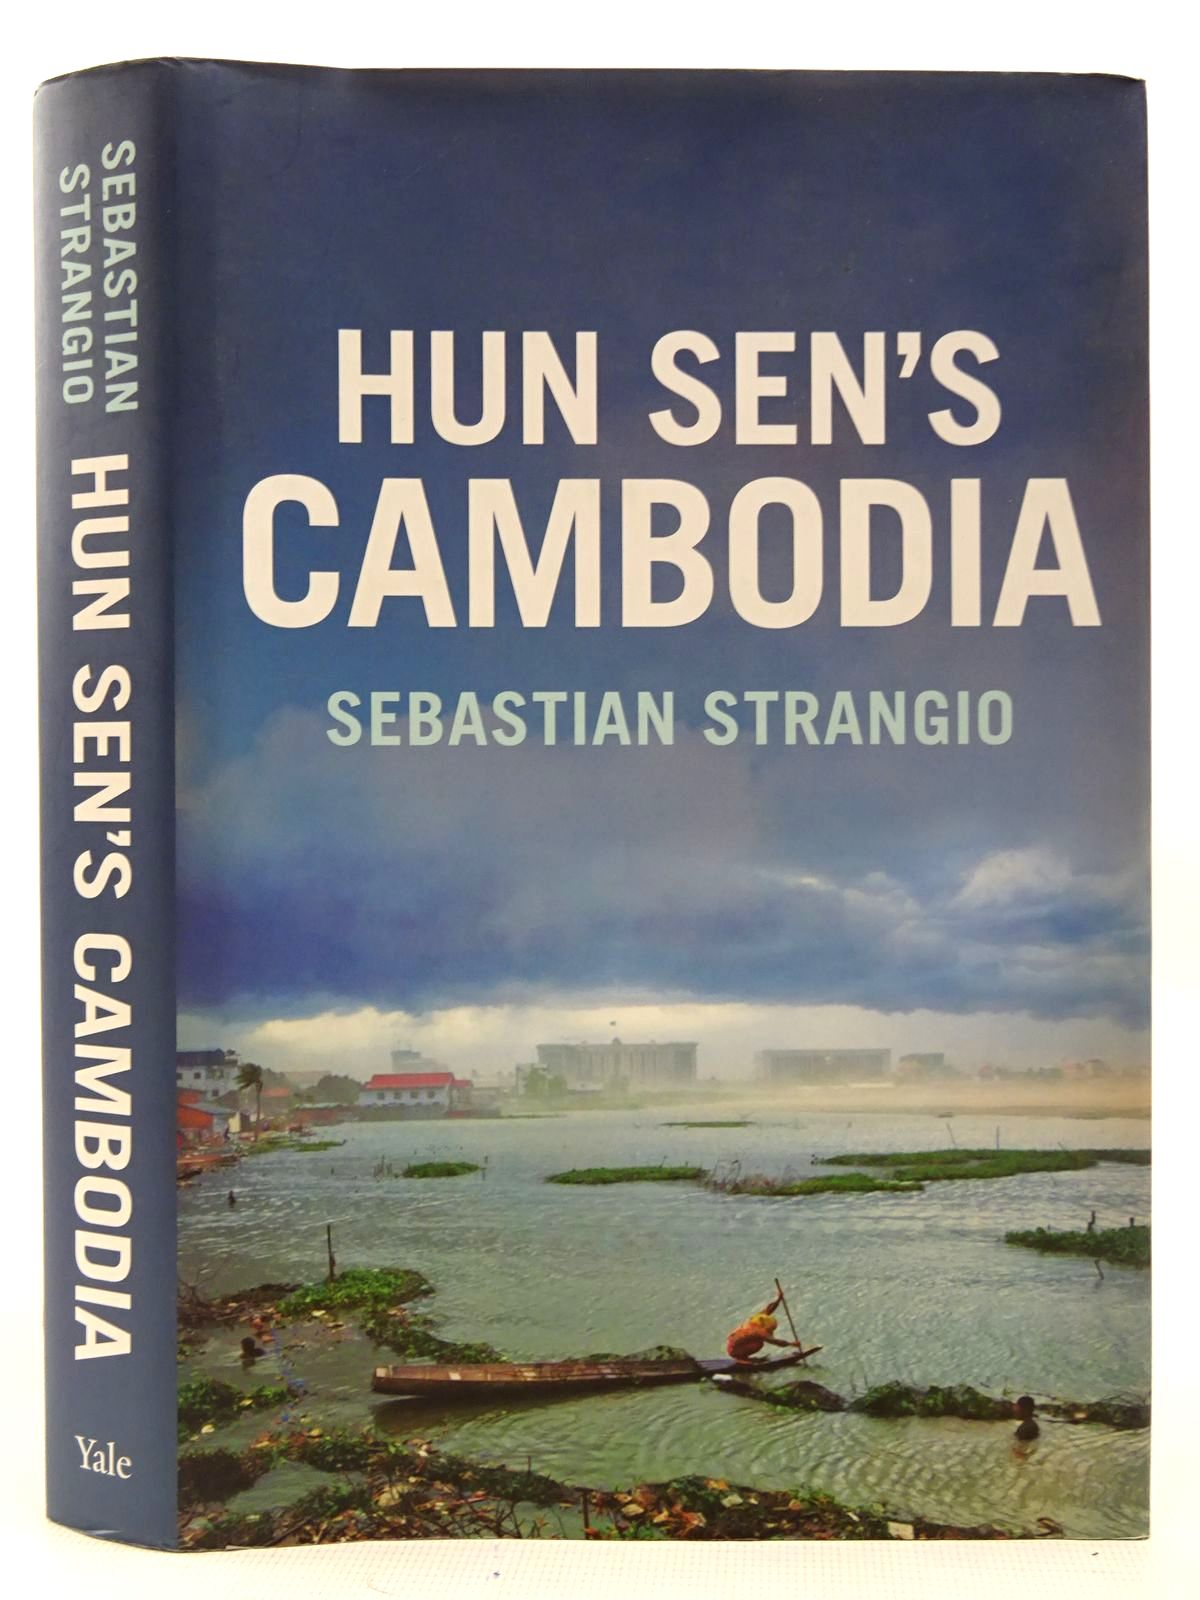 Photo of HUN SEN'S CAMBODIA written by Strangio, Sebastian published by Yale University Press (STOCK CODE: 2126881)  for sale by Stella & Rose's Books